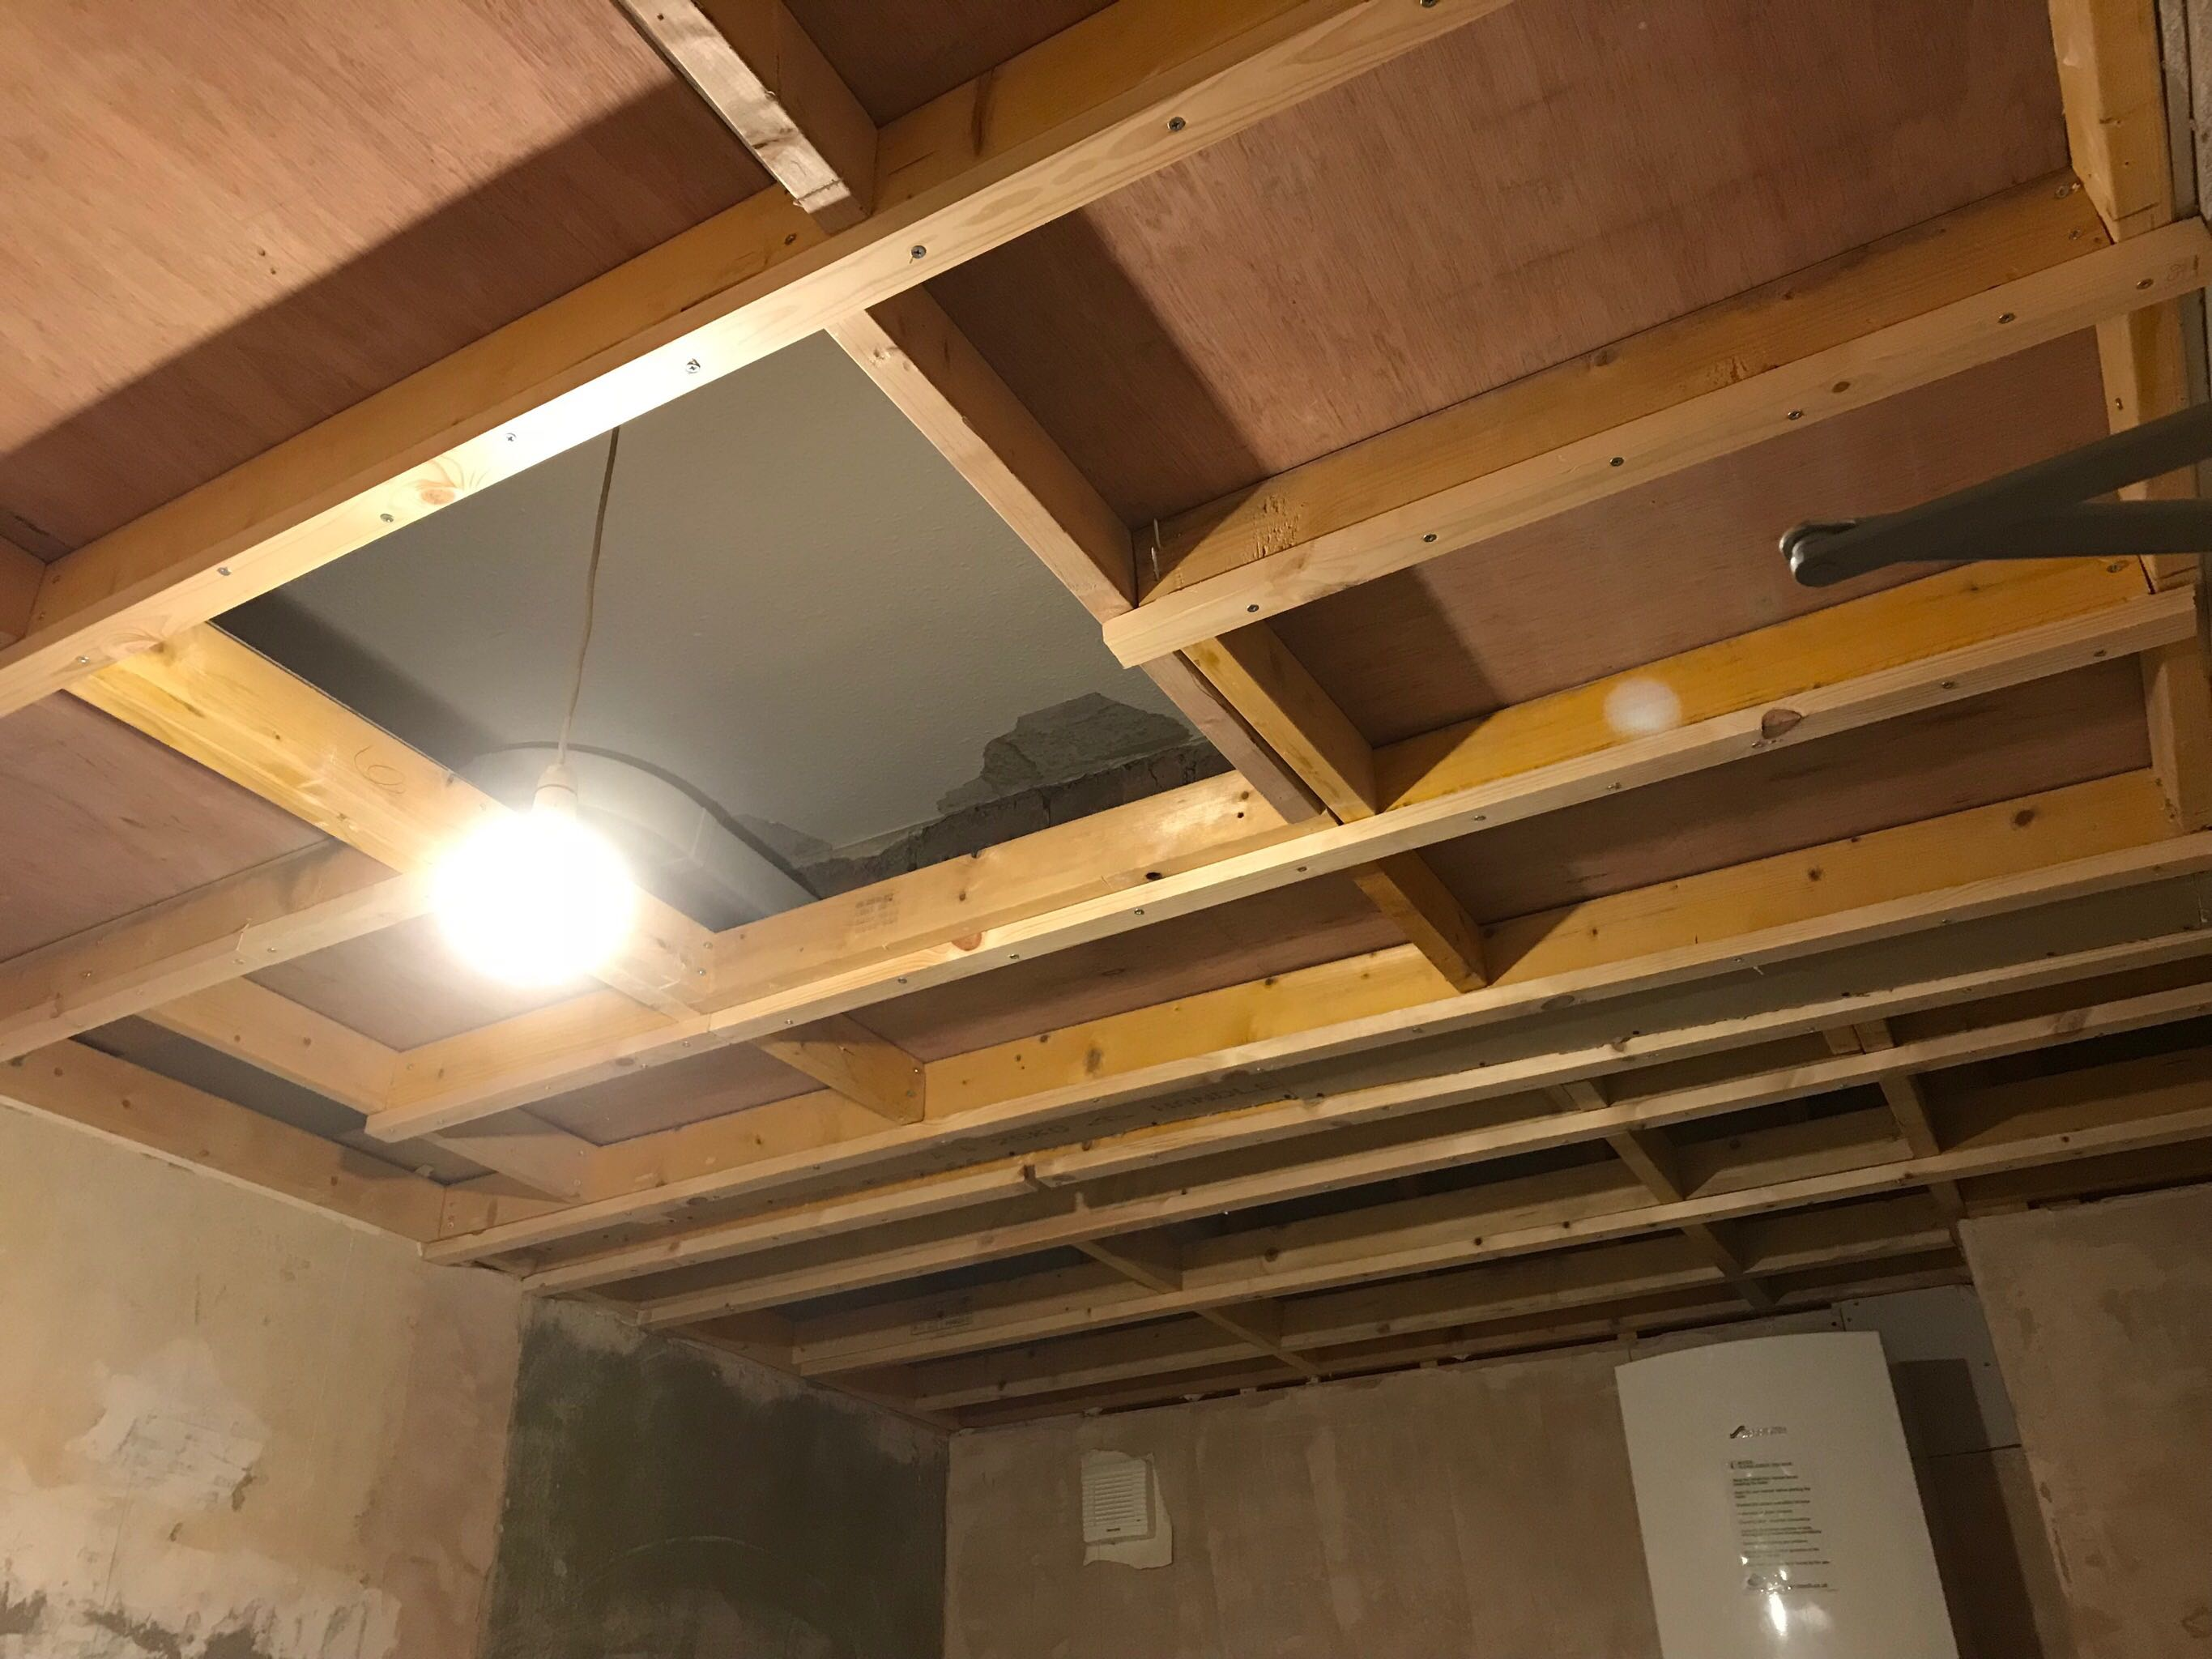 Ceiling studs ready for plasterboard